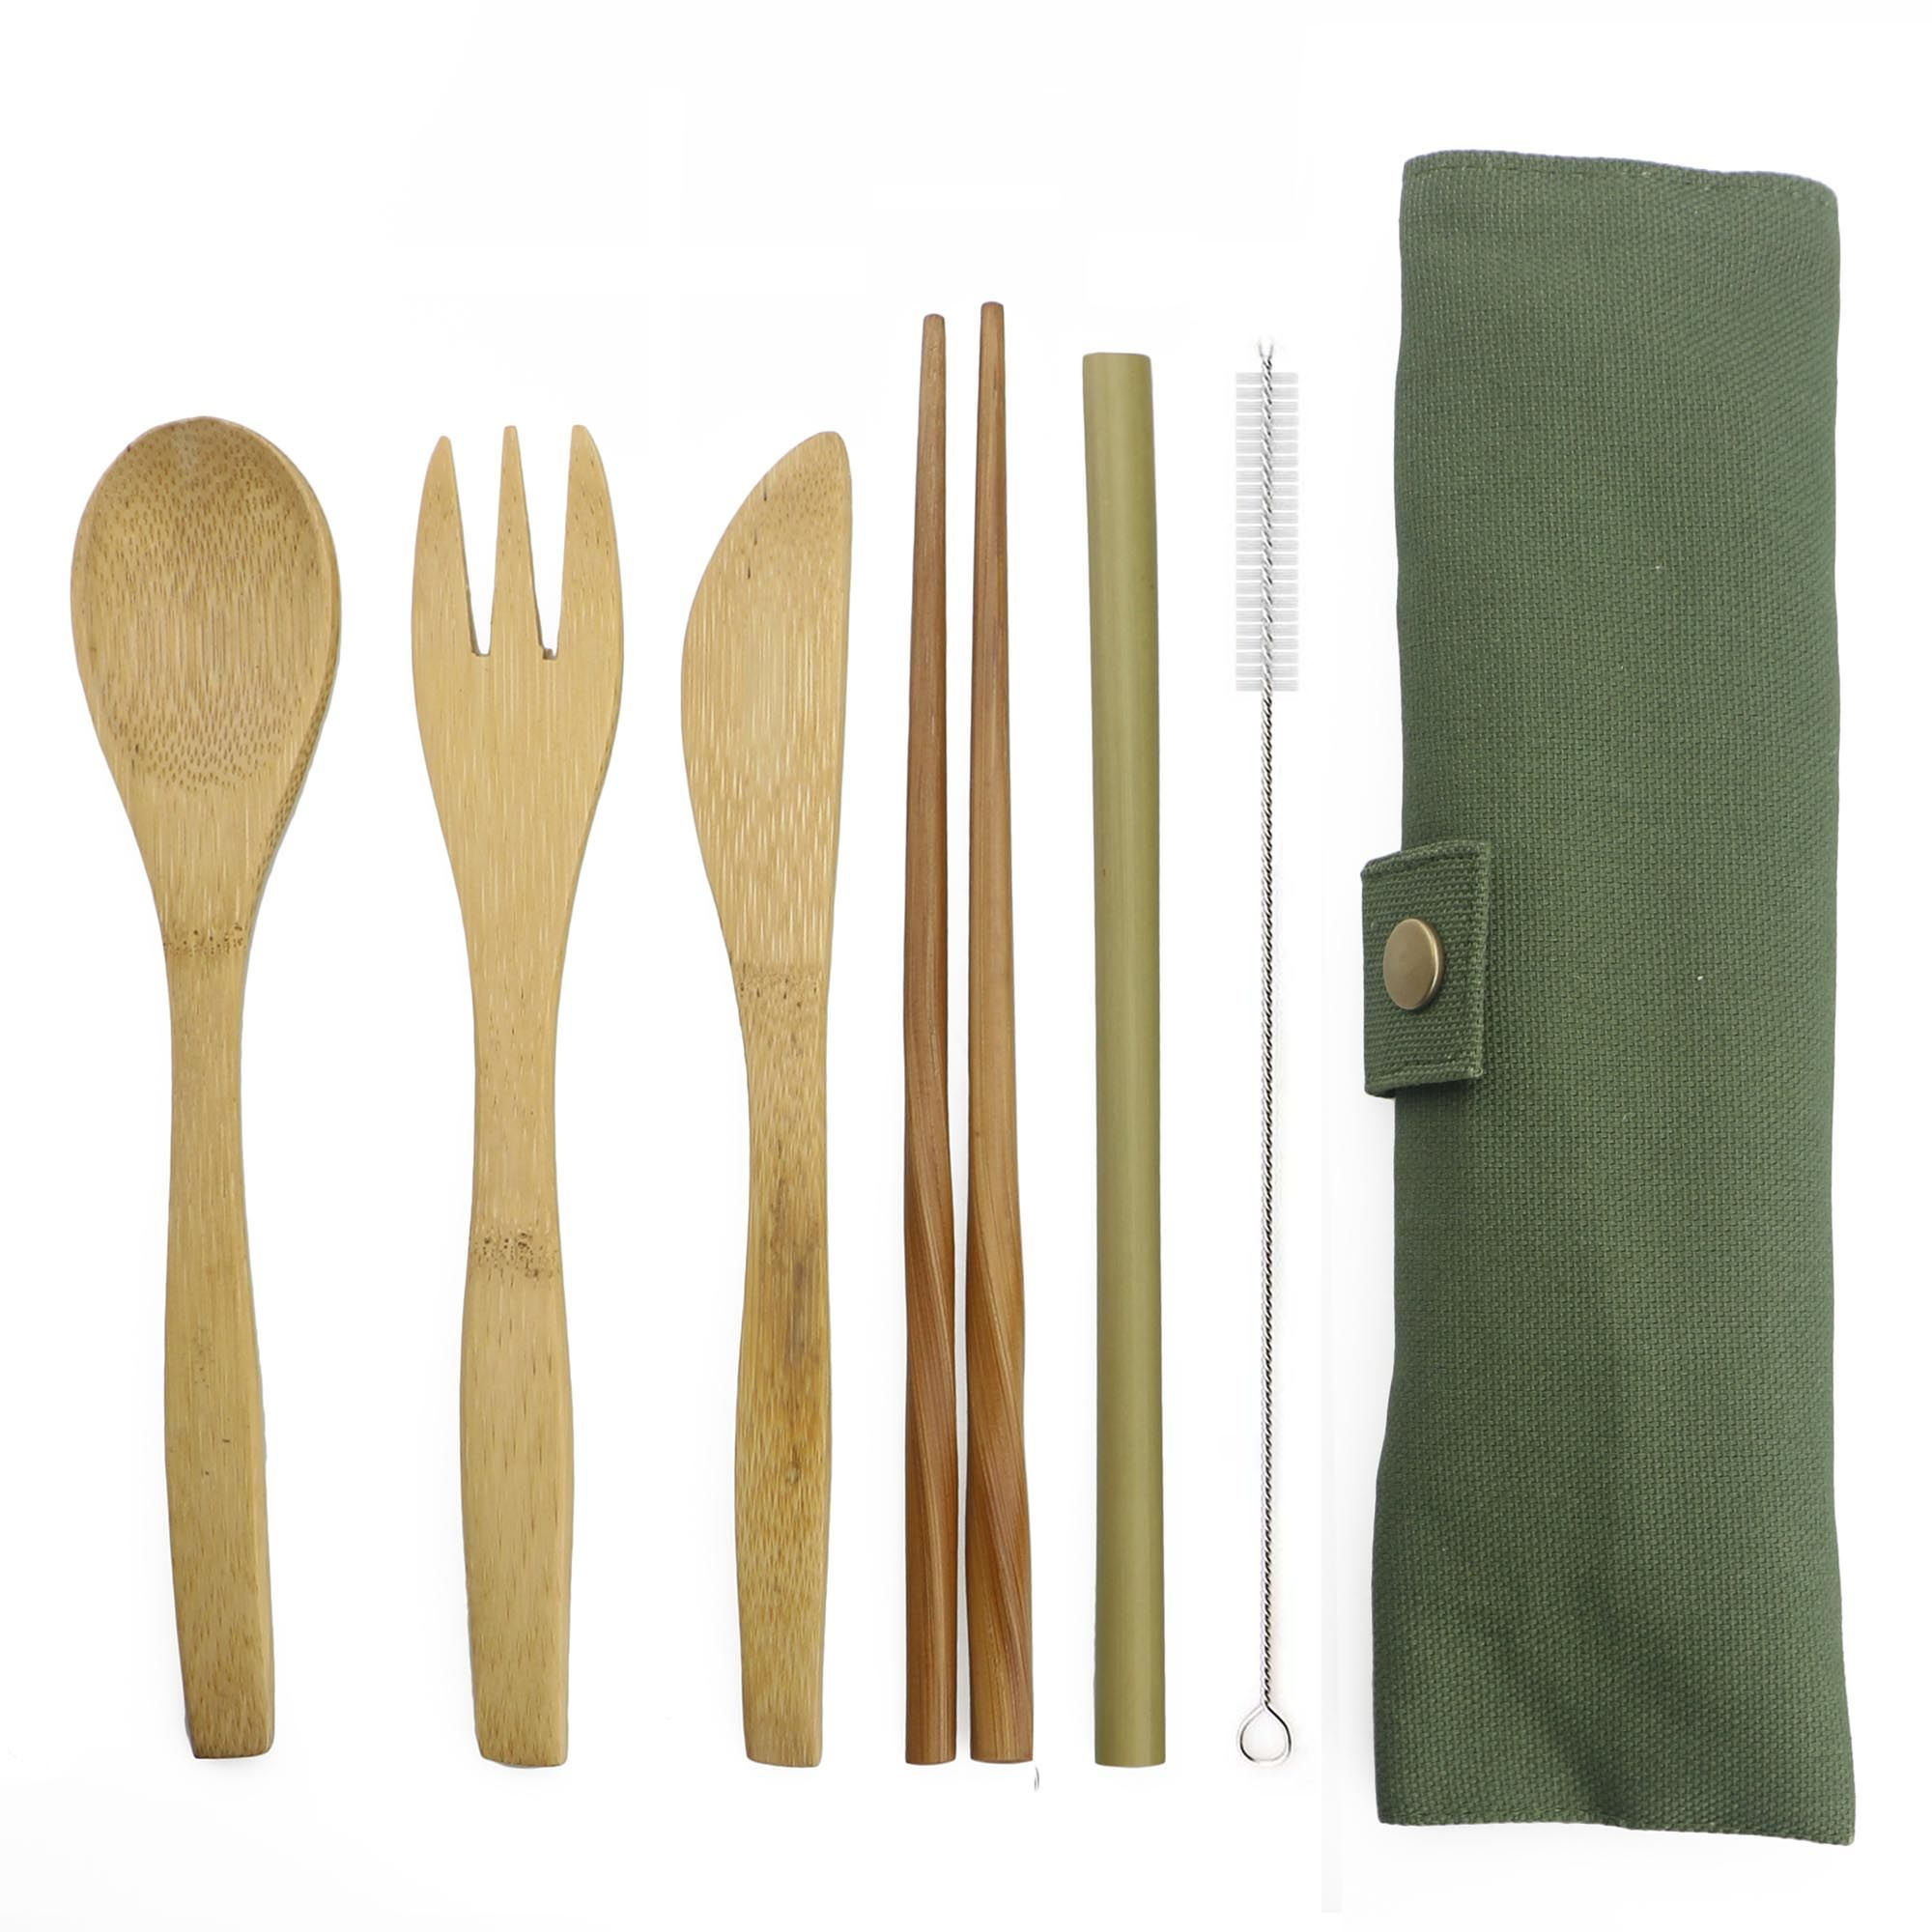 6-Piece Portable Luxury Dinnerware Japanese Wooden Cutlery Set Bamboo Cutlery Straw With Cloth Bag Kitchen Food Tableware Dinner